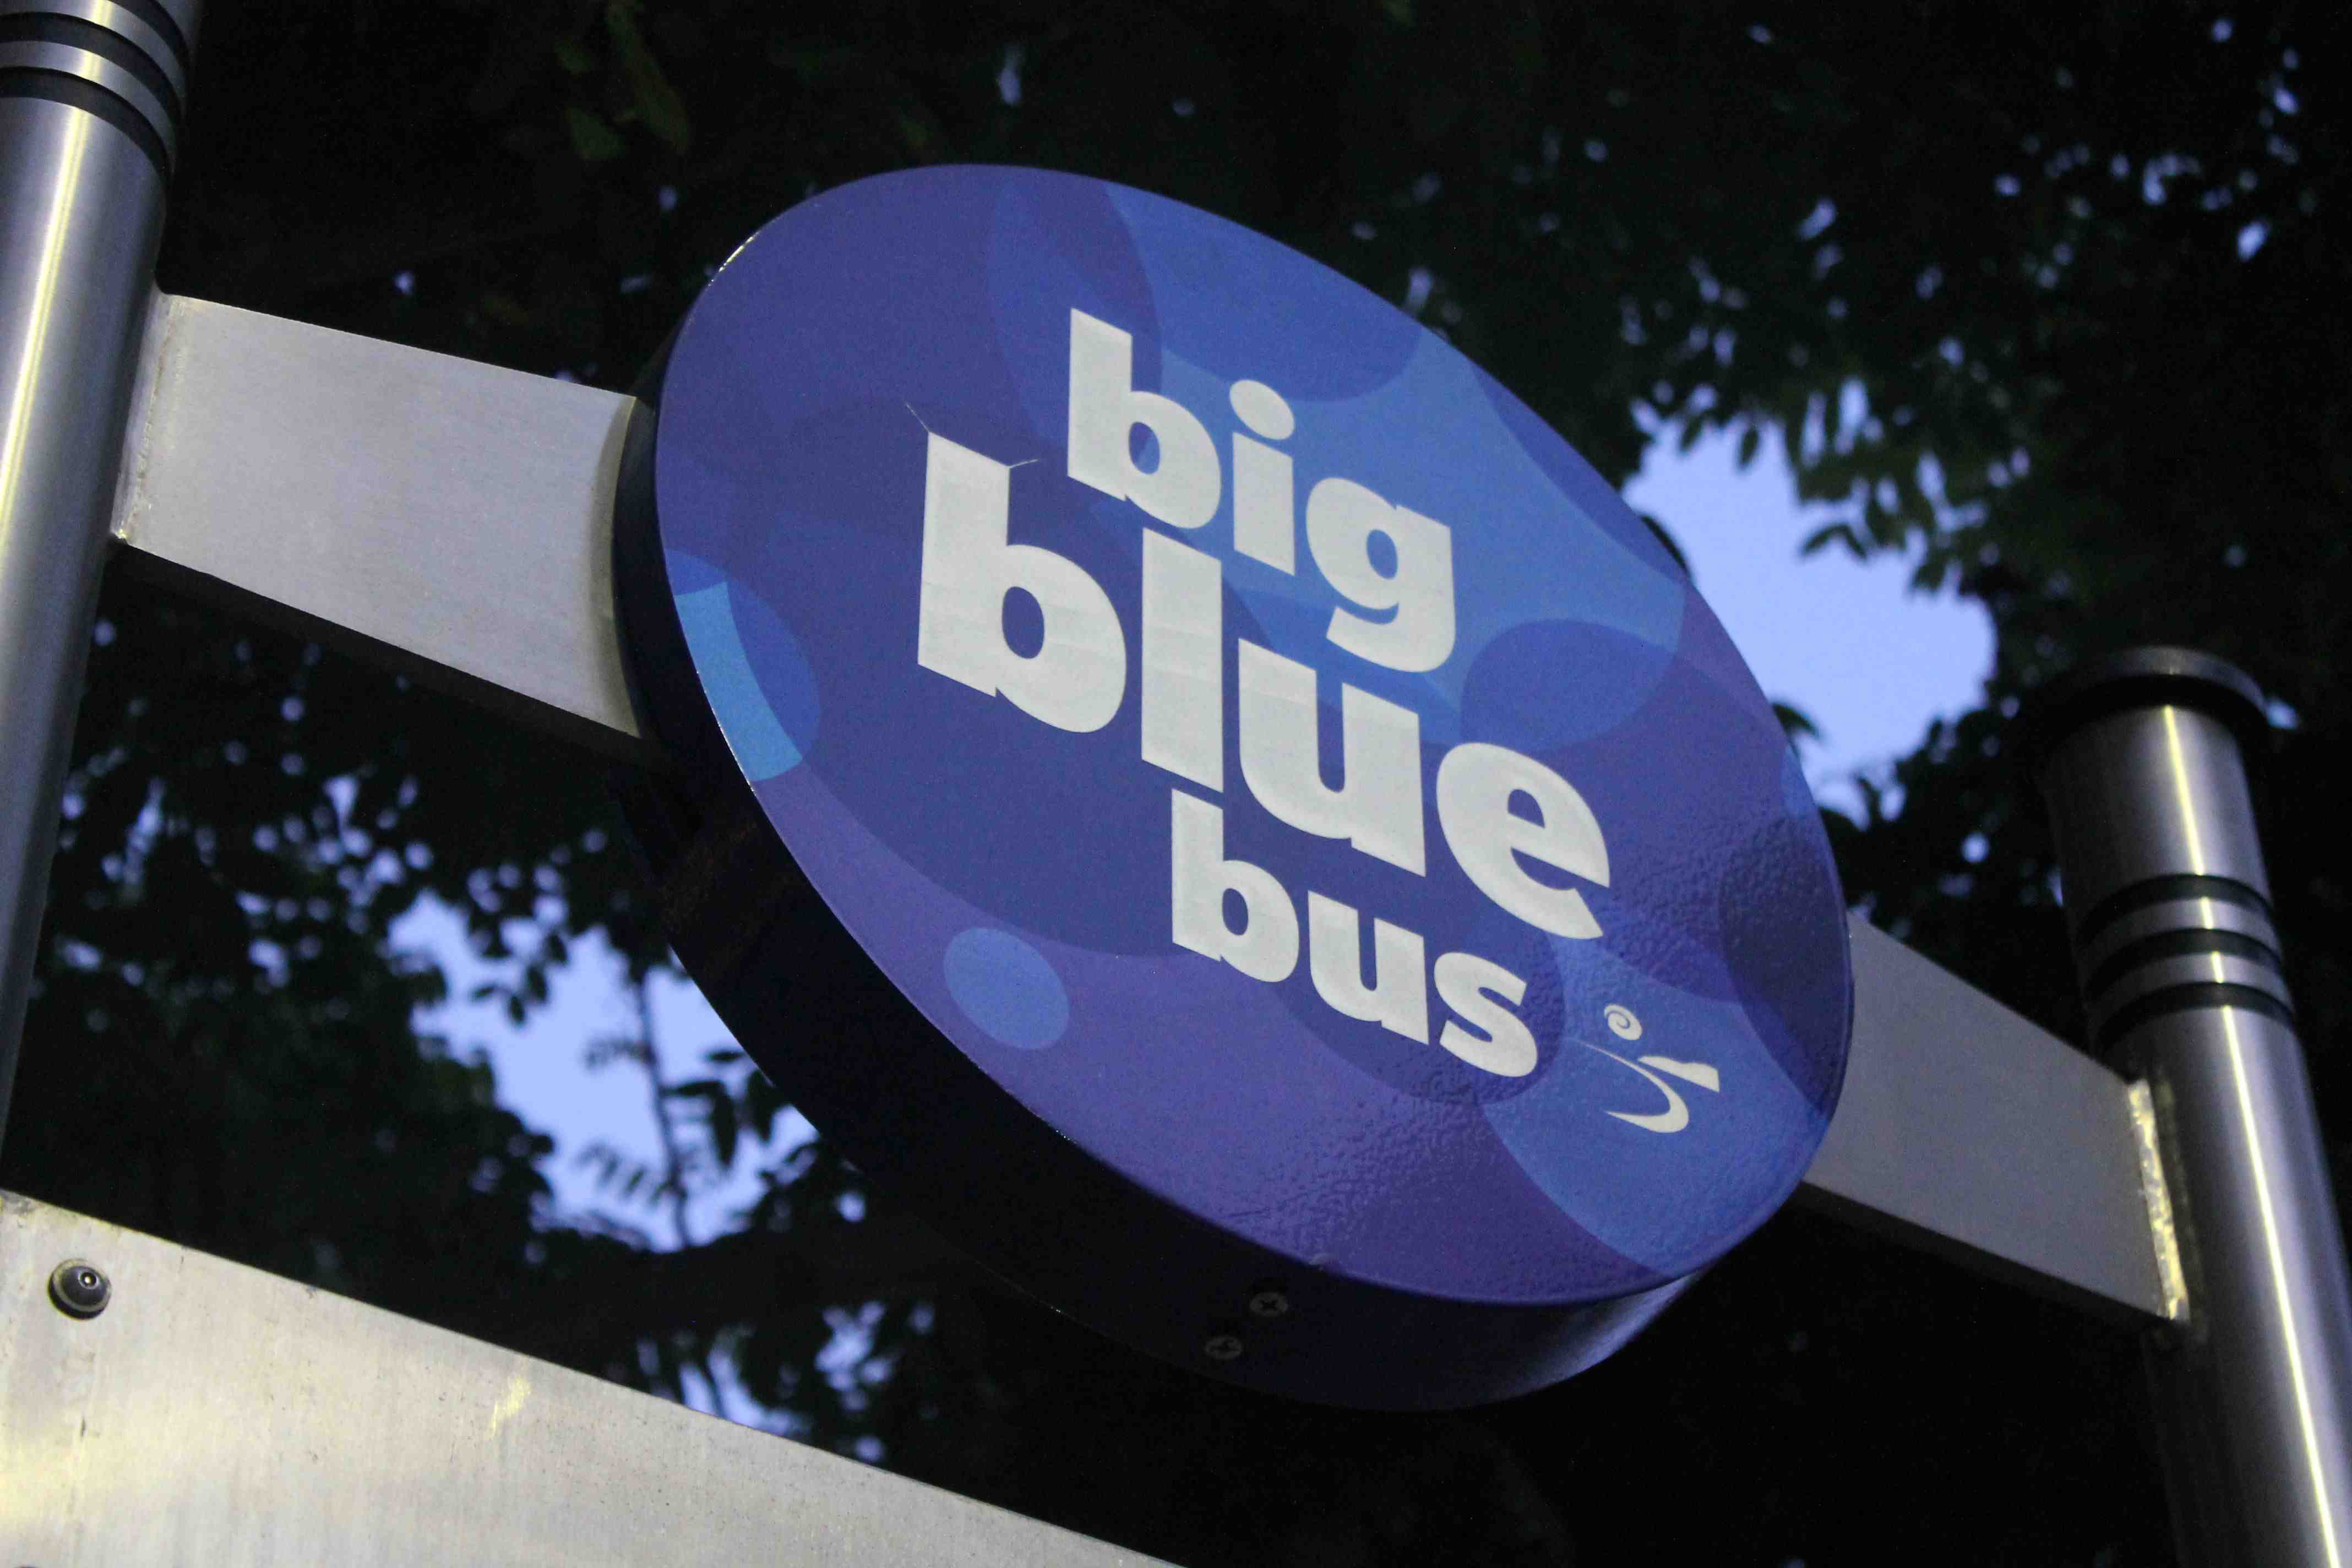 Big Blue Bus: 7000 Words, 135 Miles, 18 Buses, 4 Dollars, 1 Day